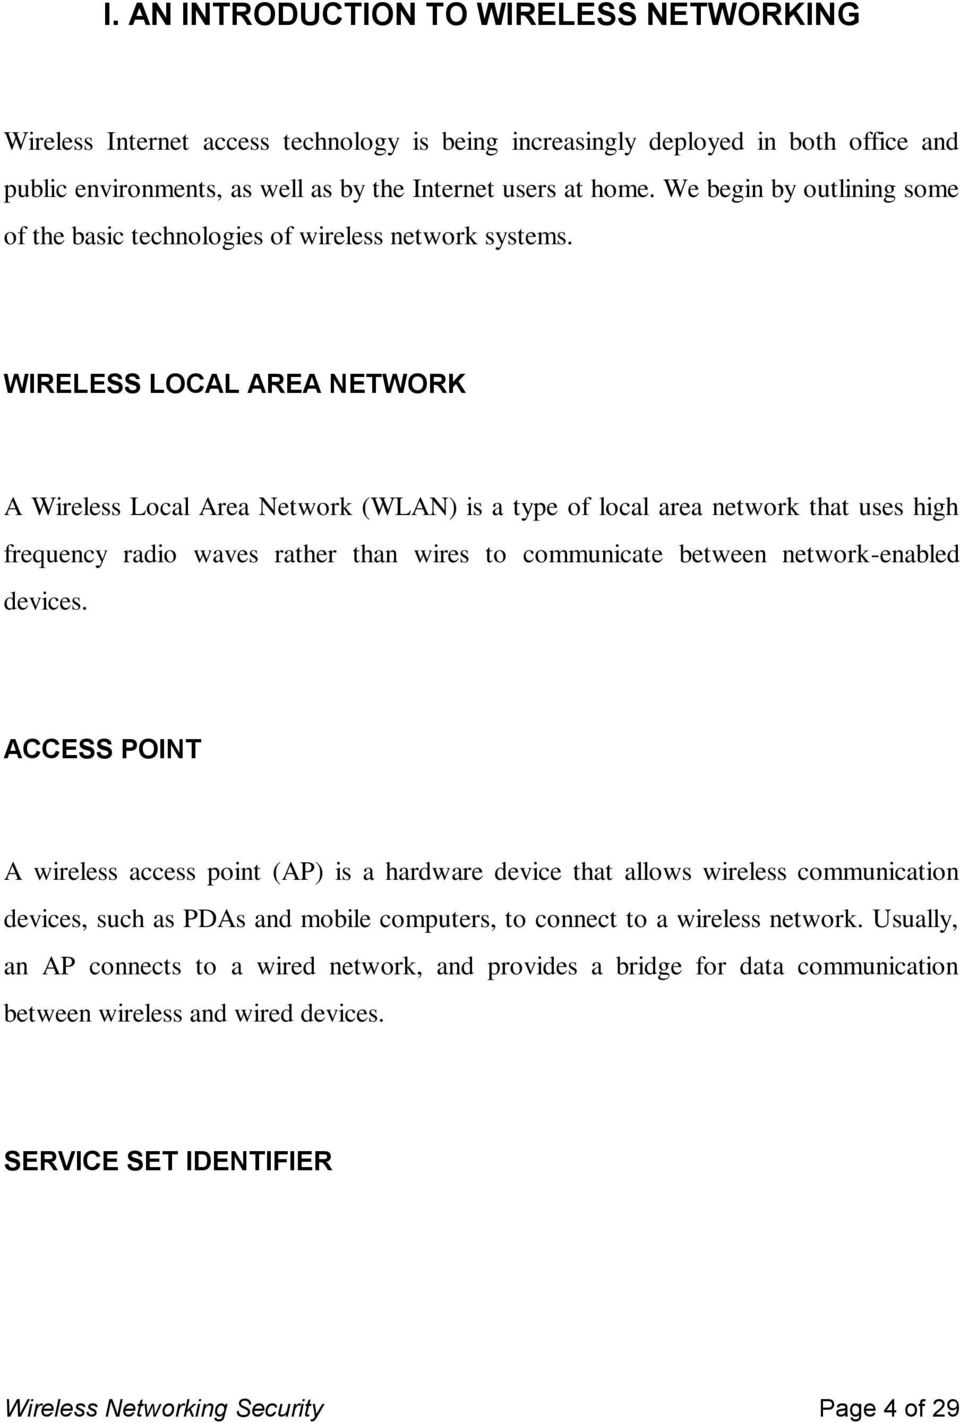 WIRELESS LOCAL AREA NETWORK A Wireless Local Area Network (WLAN) is a type of local area network that uses high frequency radio waves rather than wires to communicate between network-enabled devices.